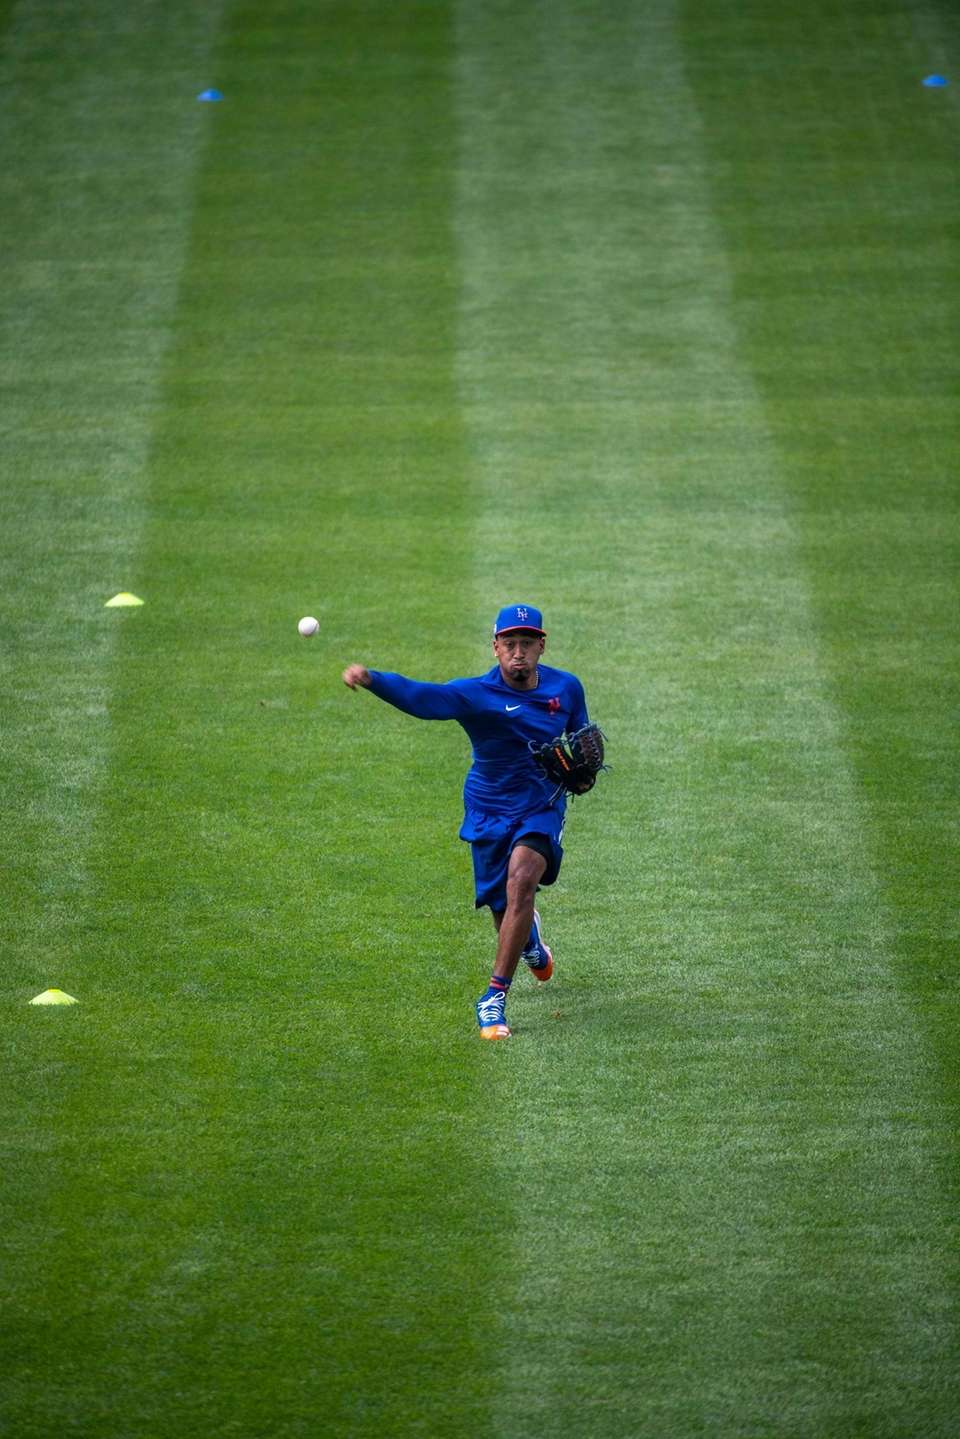 New York Mets pitcher Edwin Díaz during a